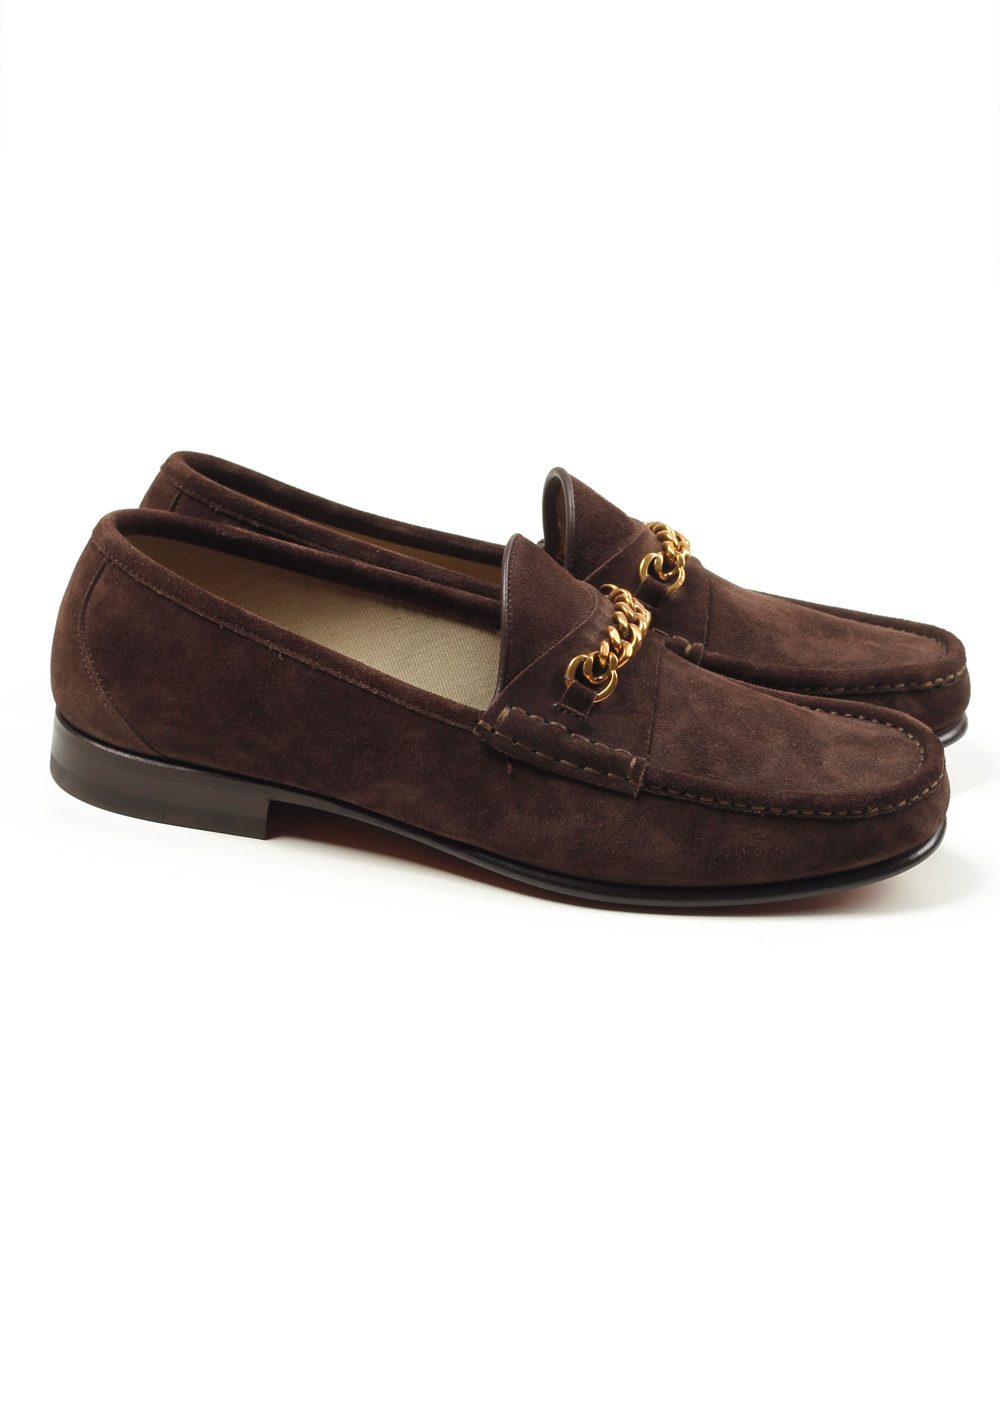 28c89f7f655 TOM FORD York Brown Suede Chain Loafers Shoes Size 9